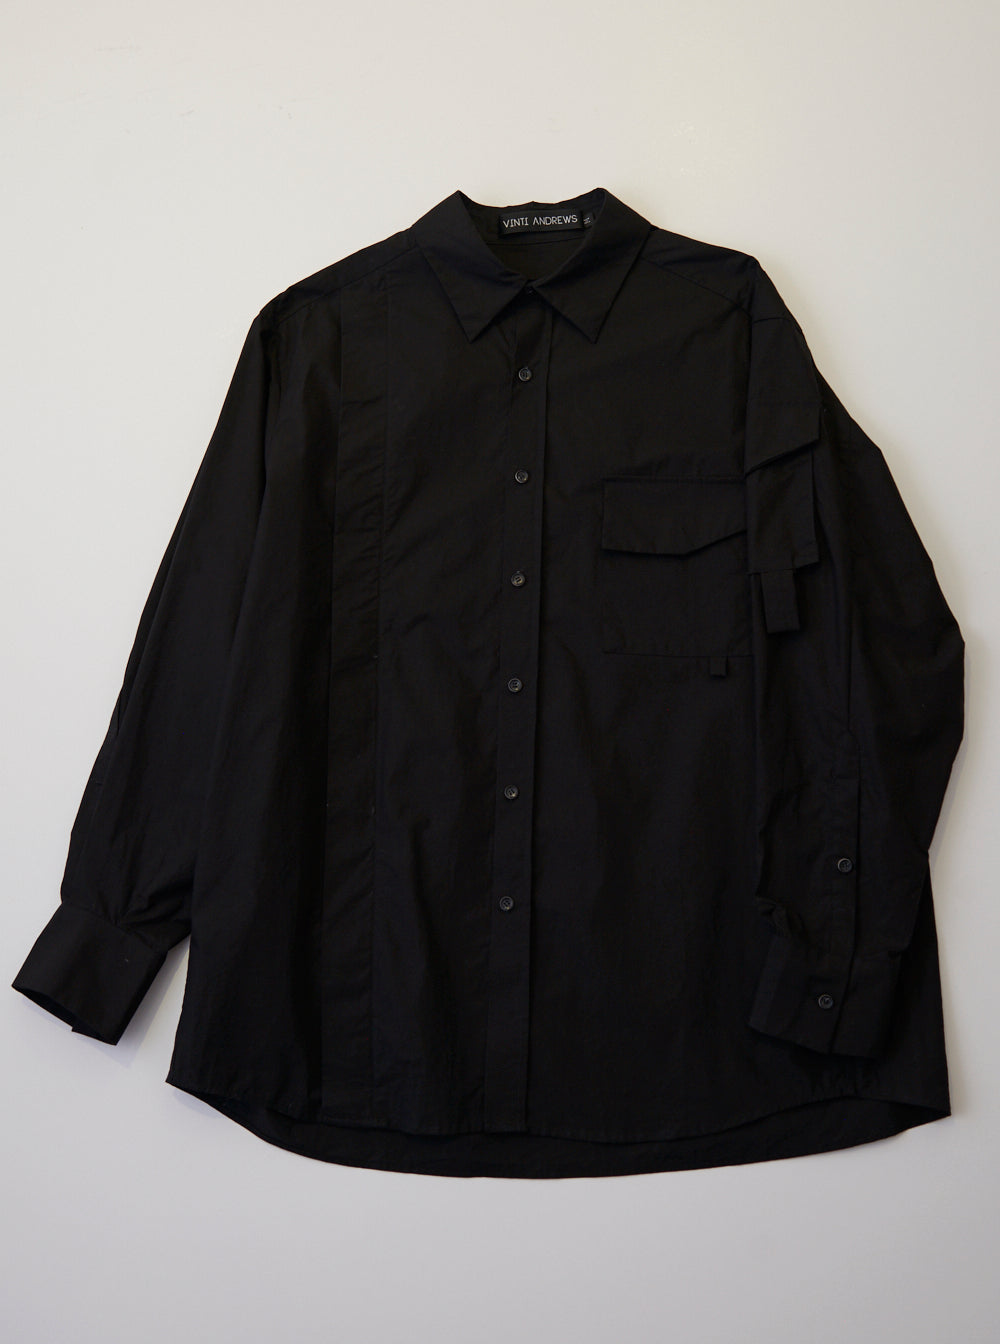 Vinti Andrews Arm Pocket Shirt Black